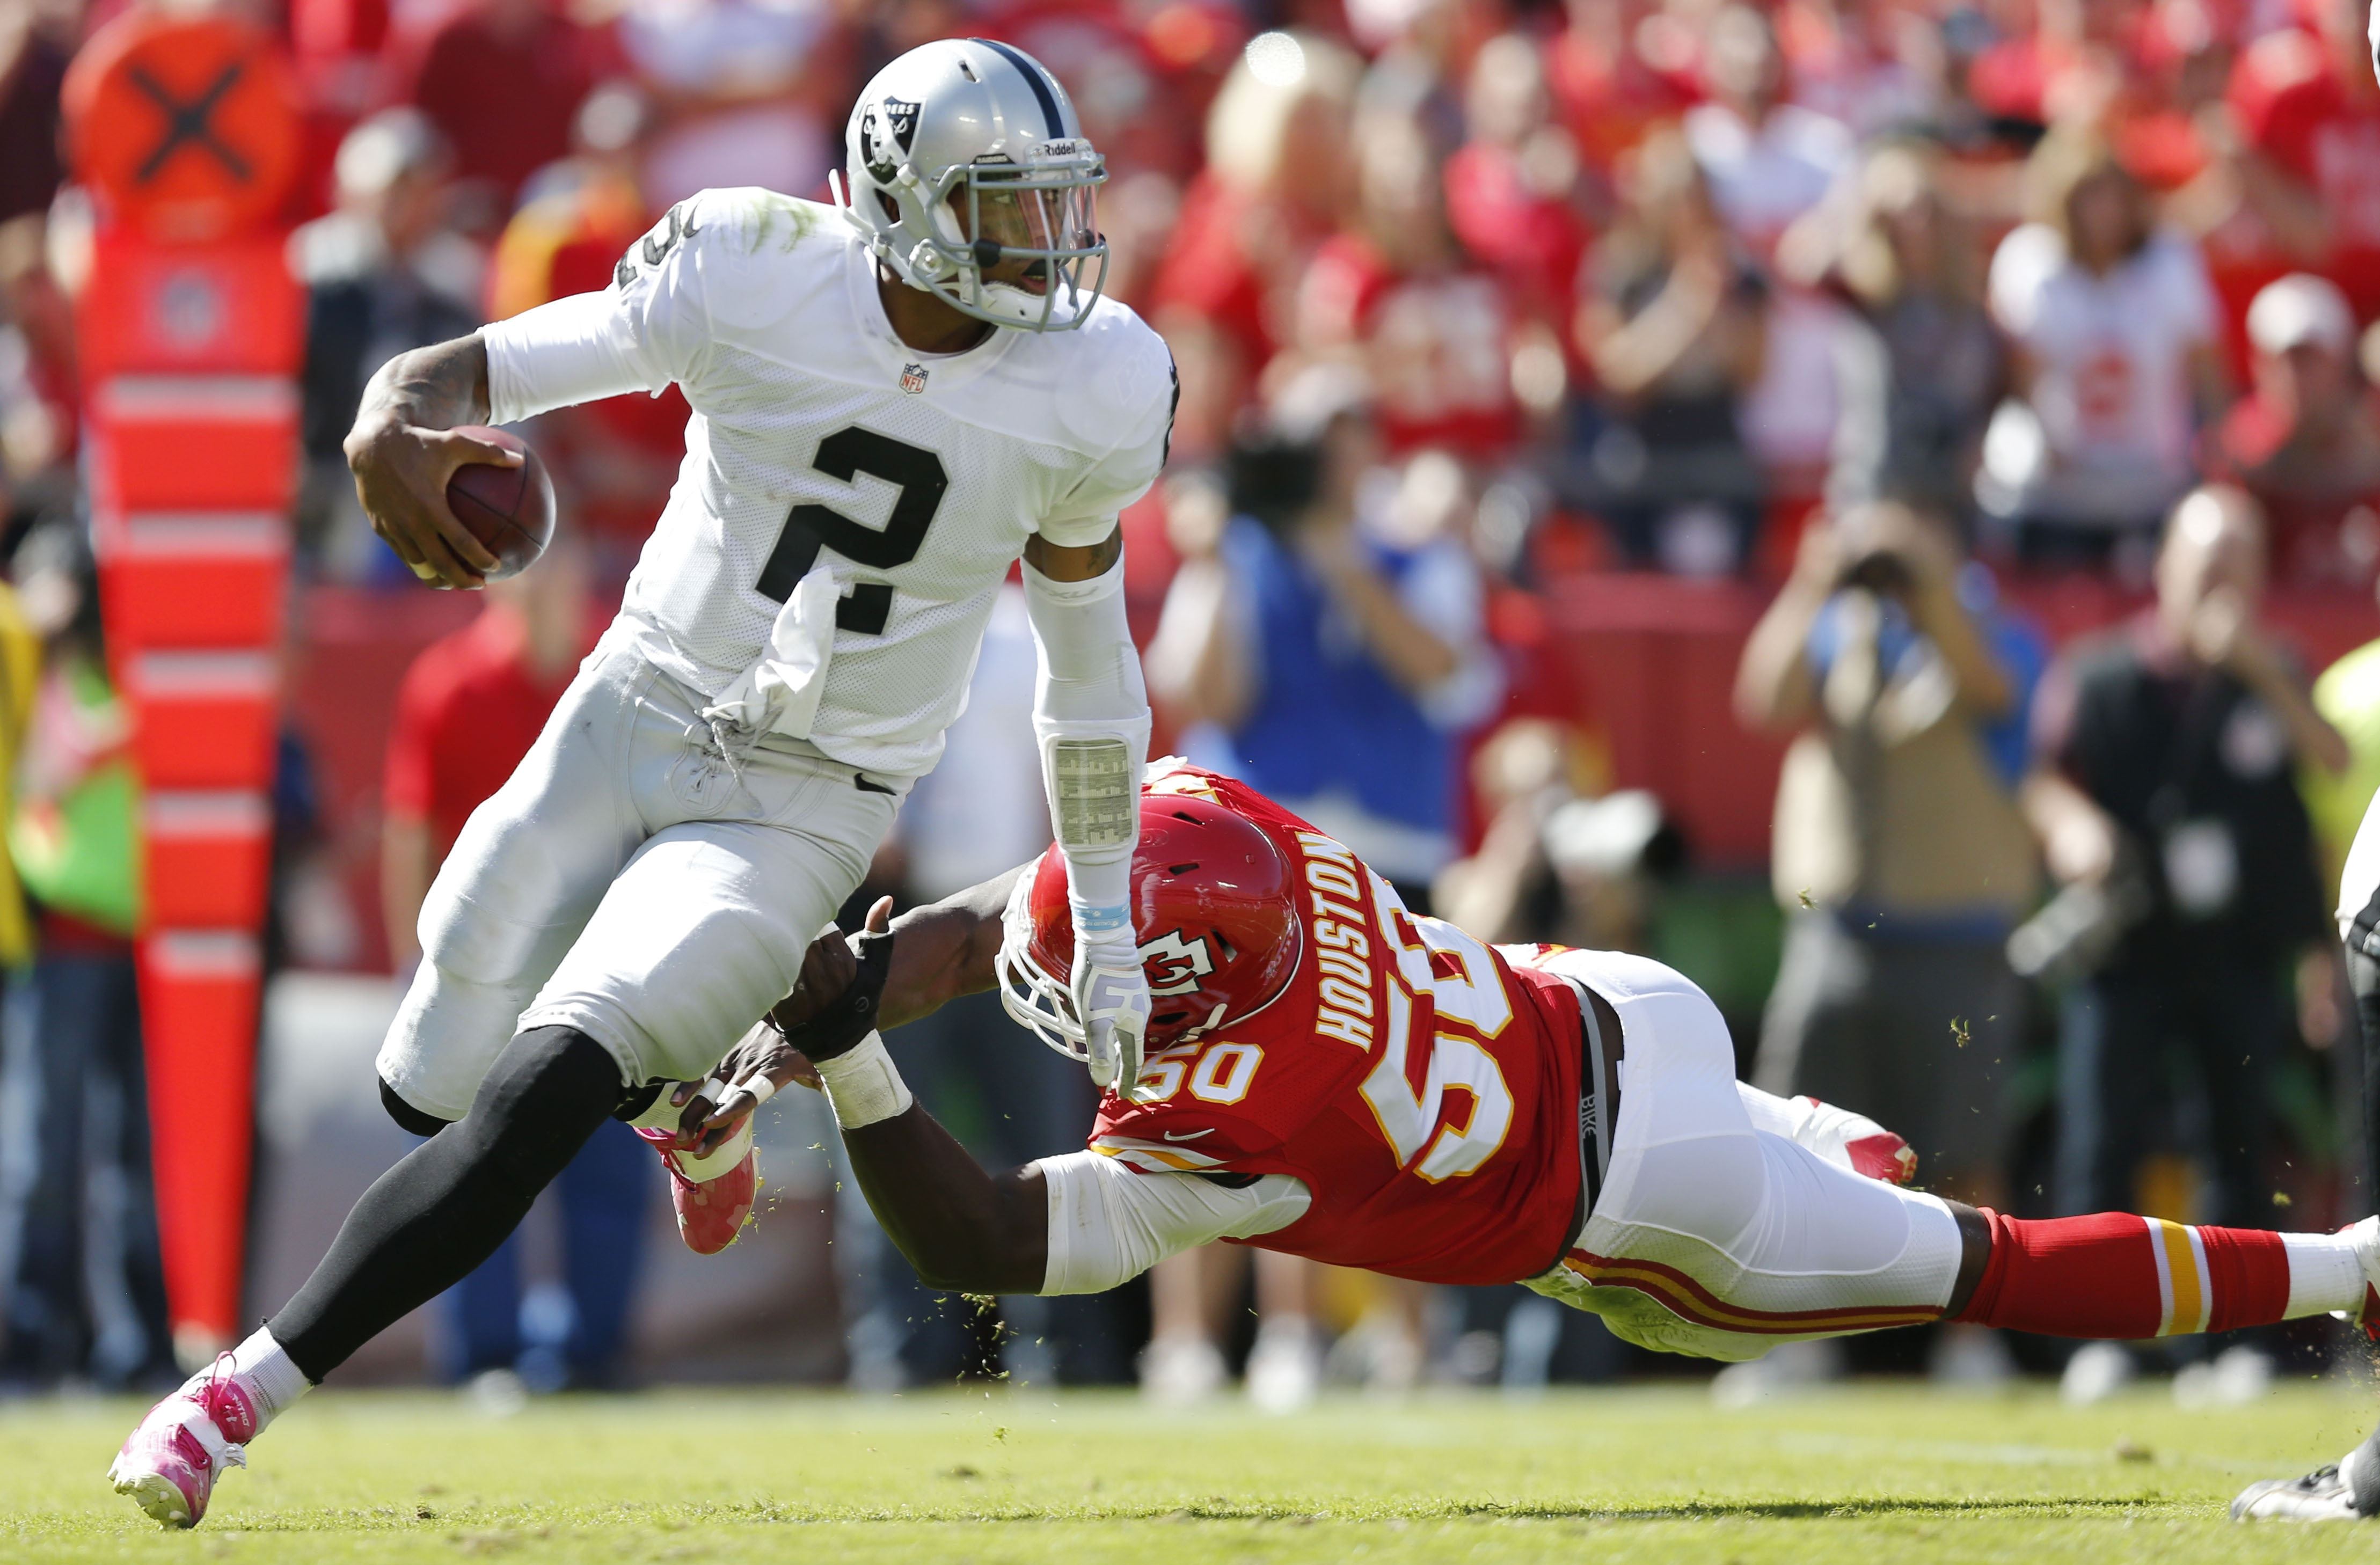 Oakland quarterback Terrelle Pryor is the team's leading rusher and is looking to go 3-0 as a starter at home.